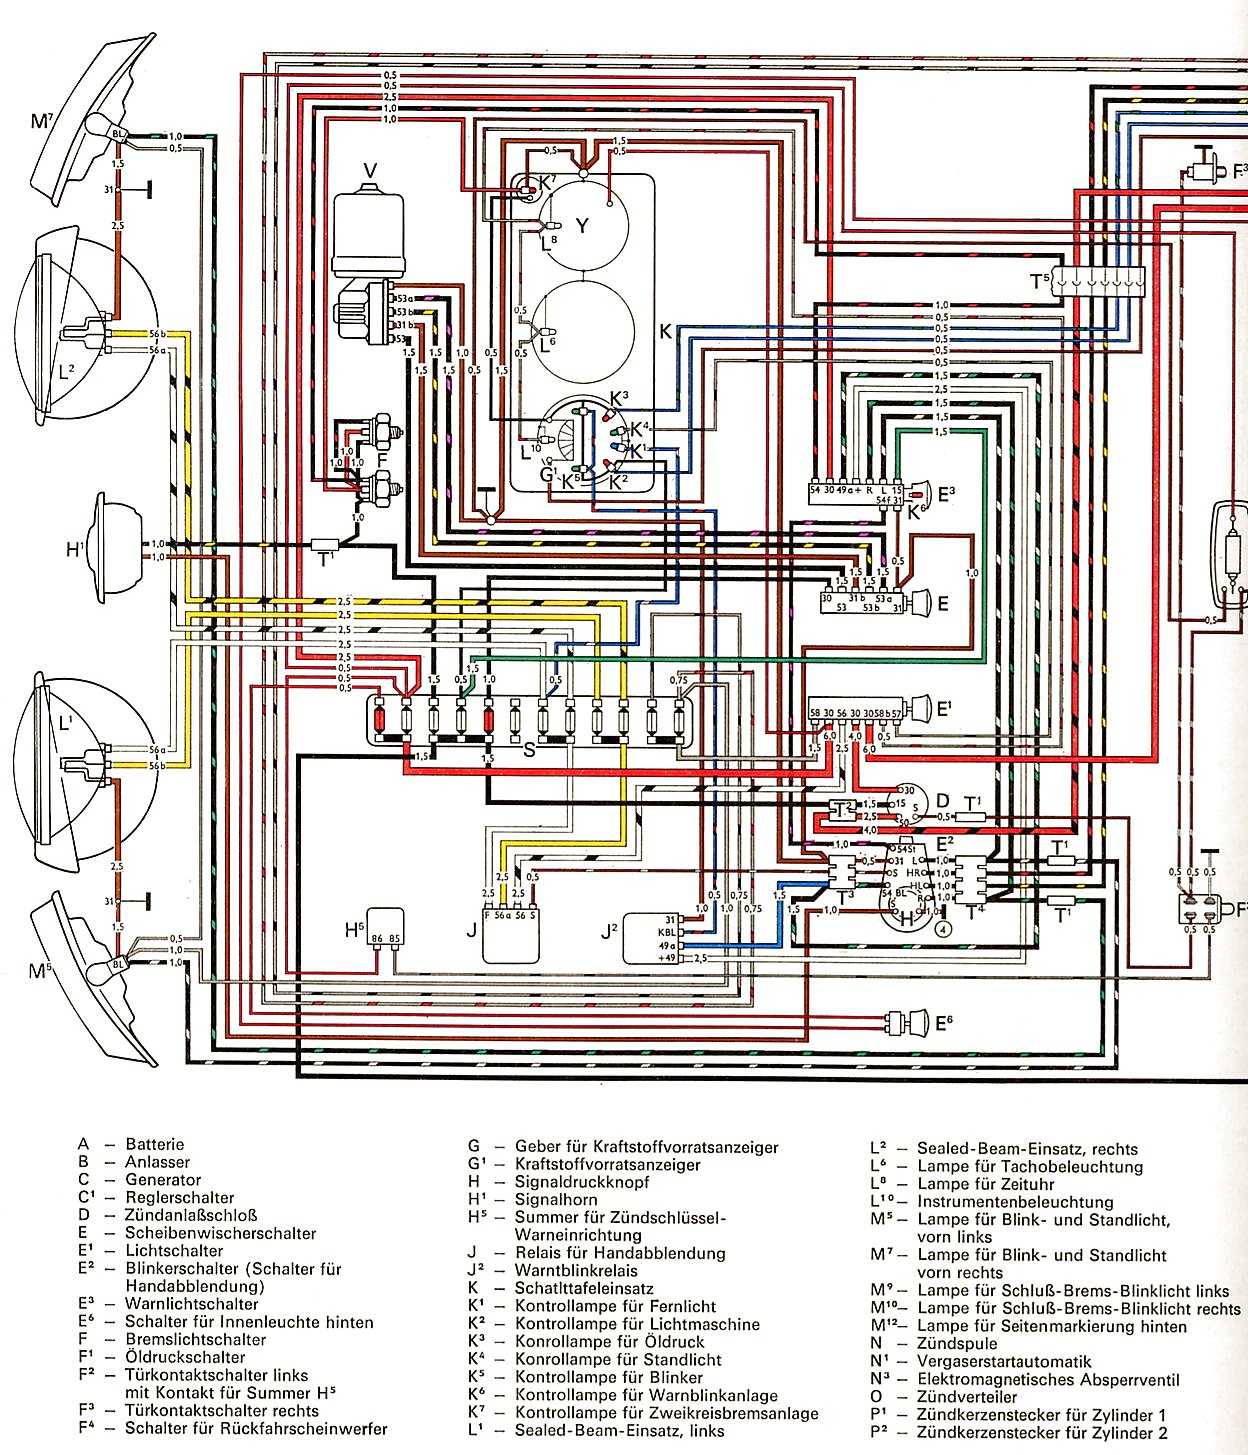 1968 vw beetle wiring diagram 1968 image wiring vw wiring diagrams on 1968 vw beetle wiring diagram